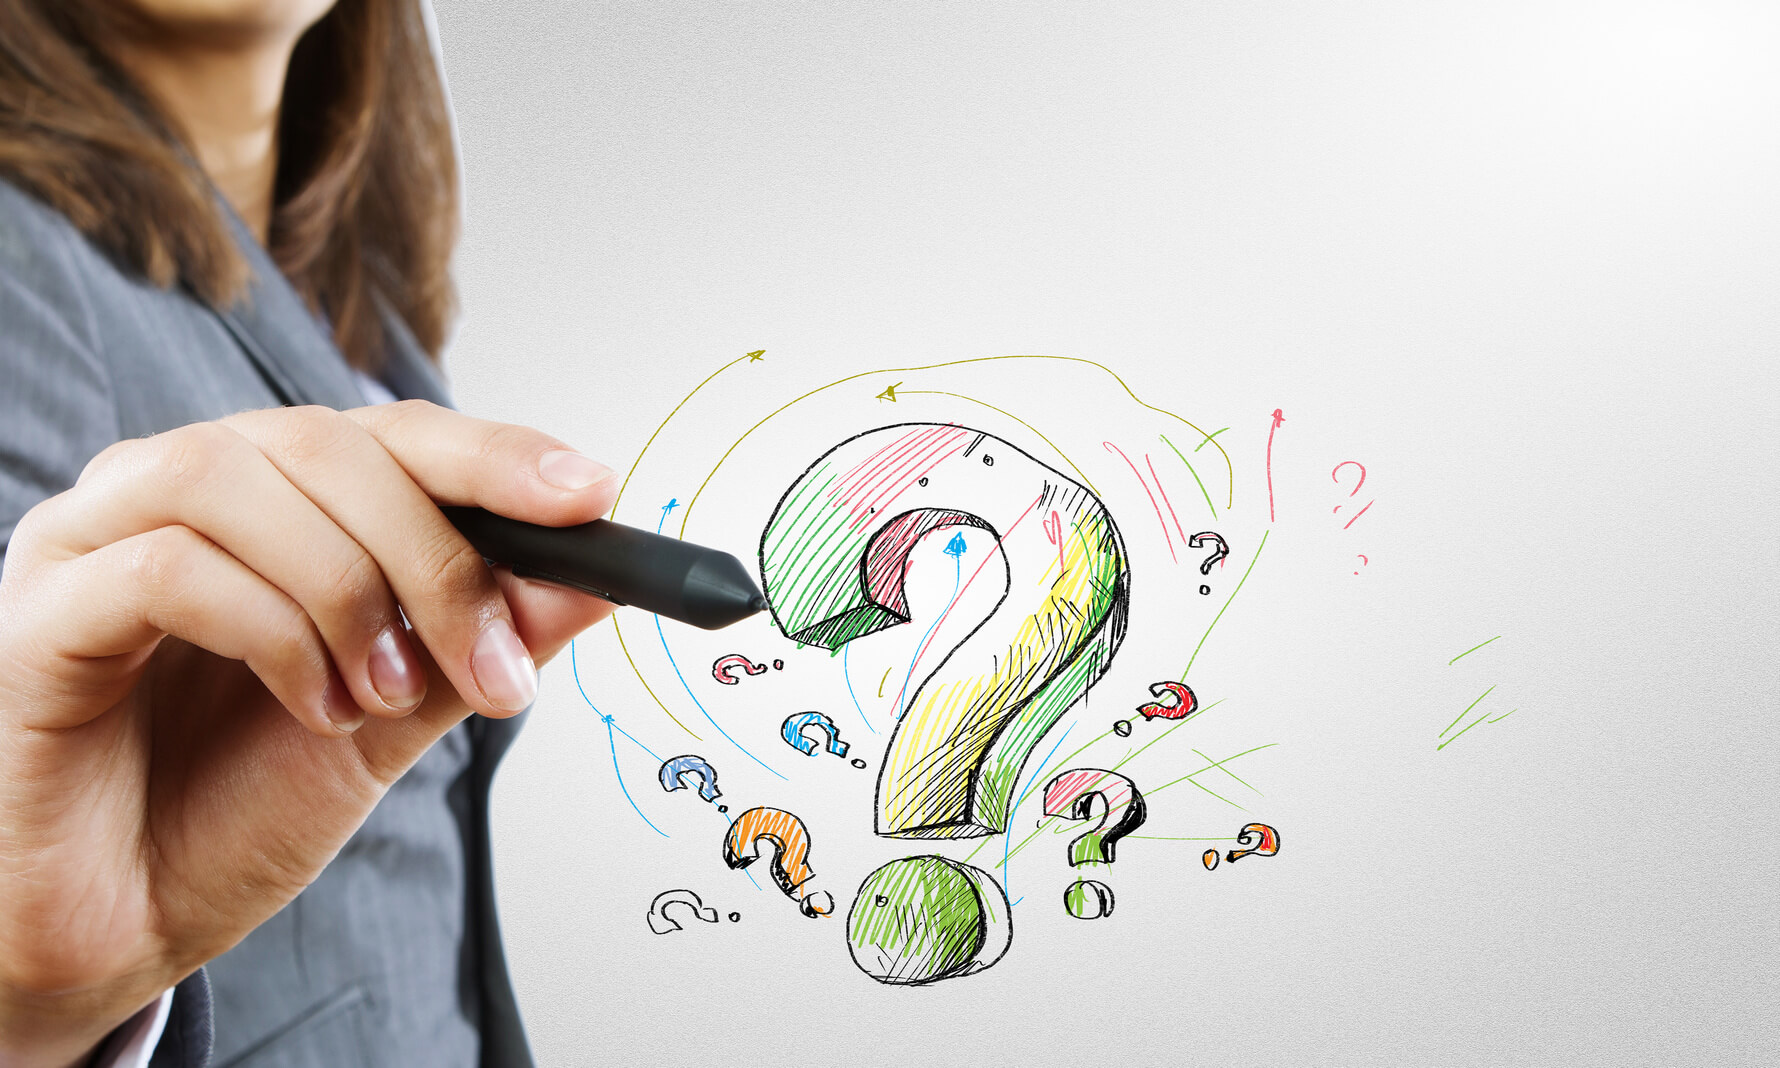 Questions and answers capabilities software